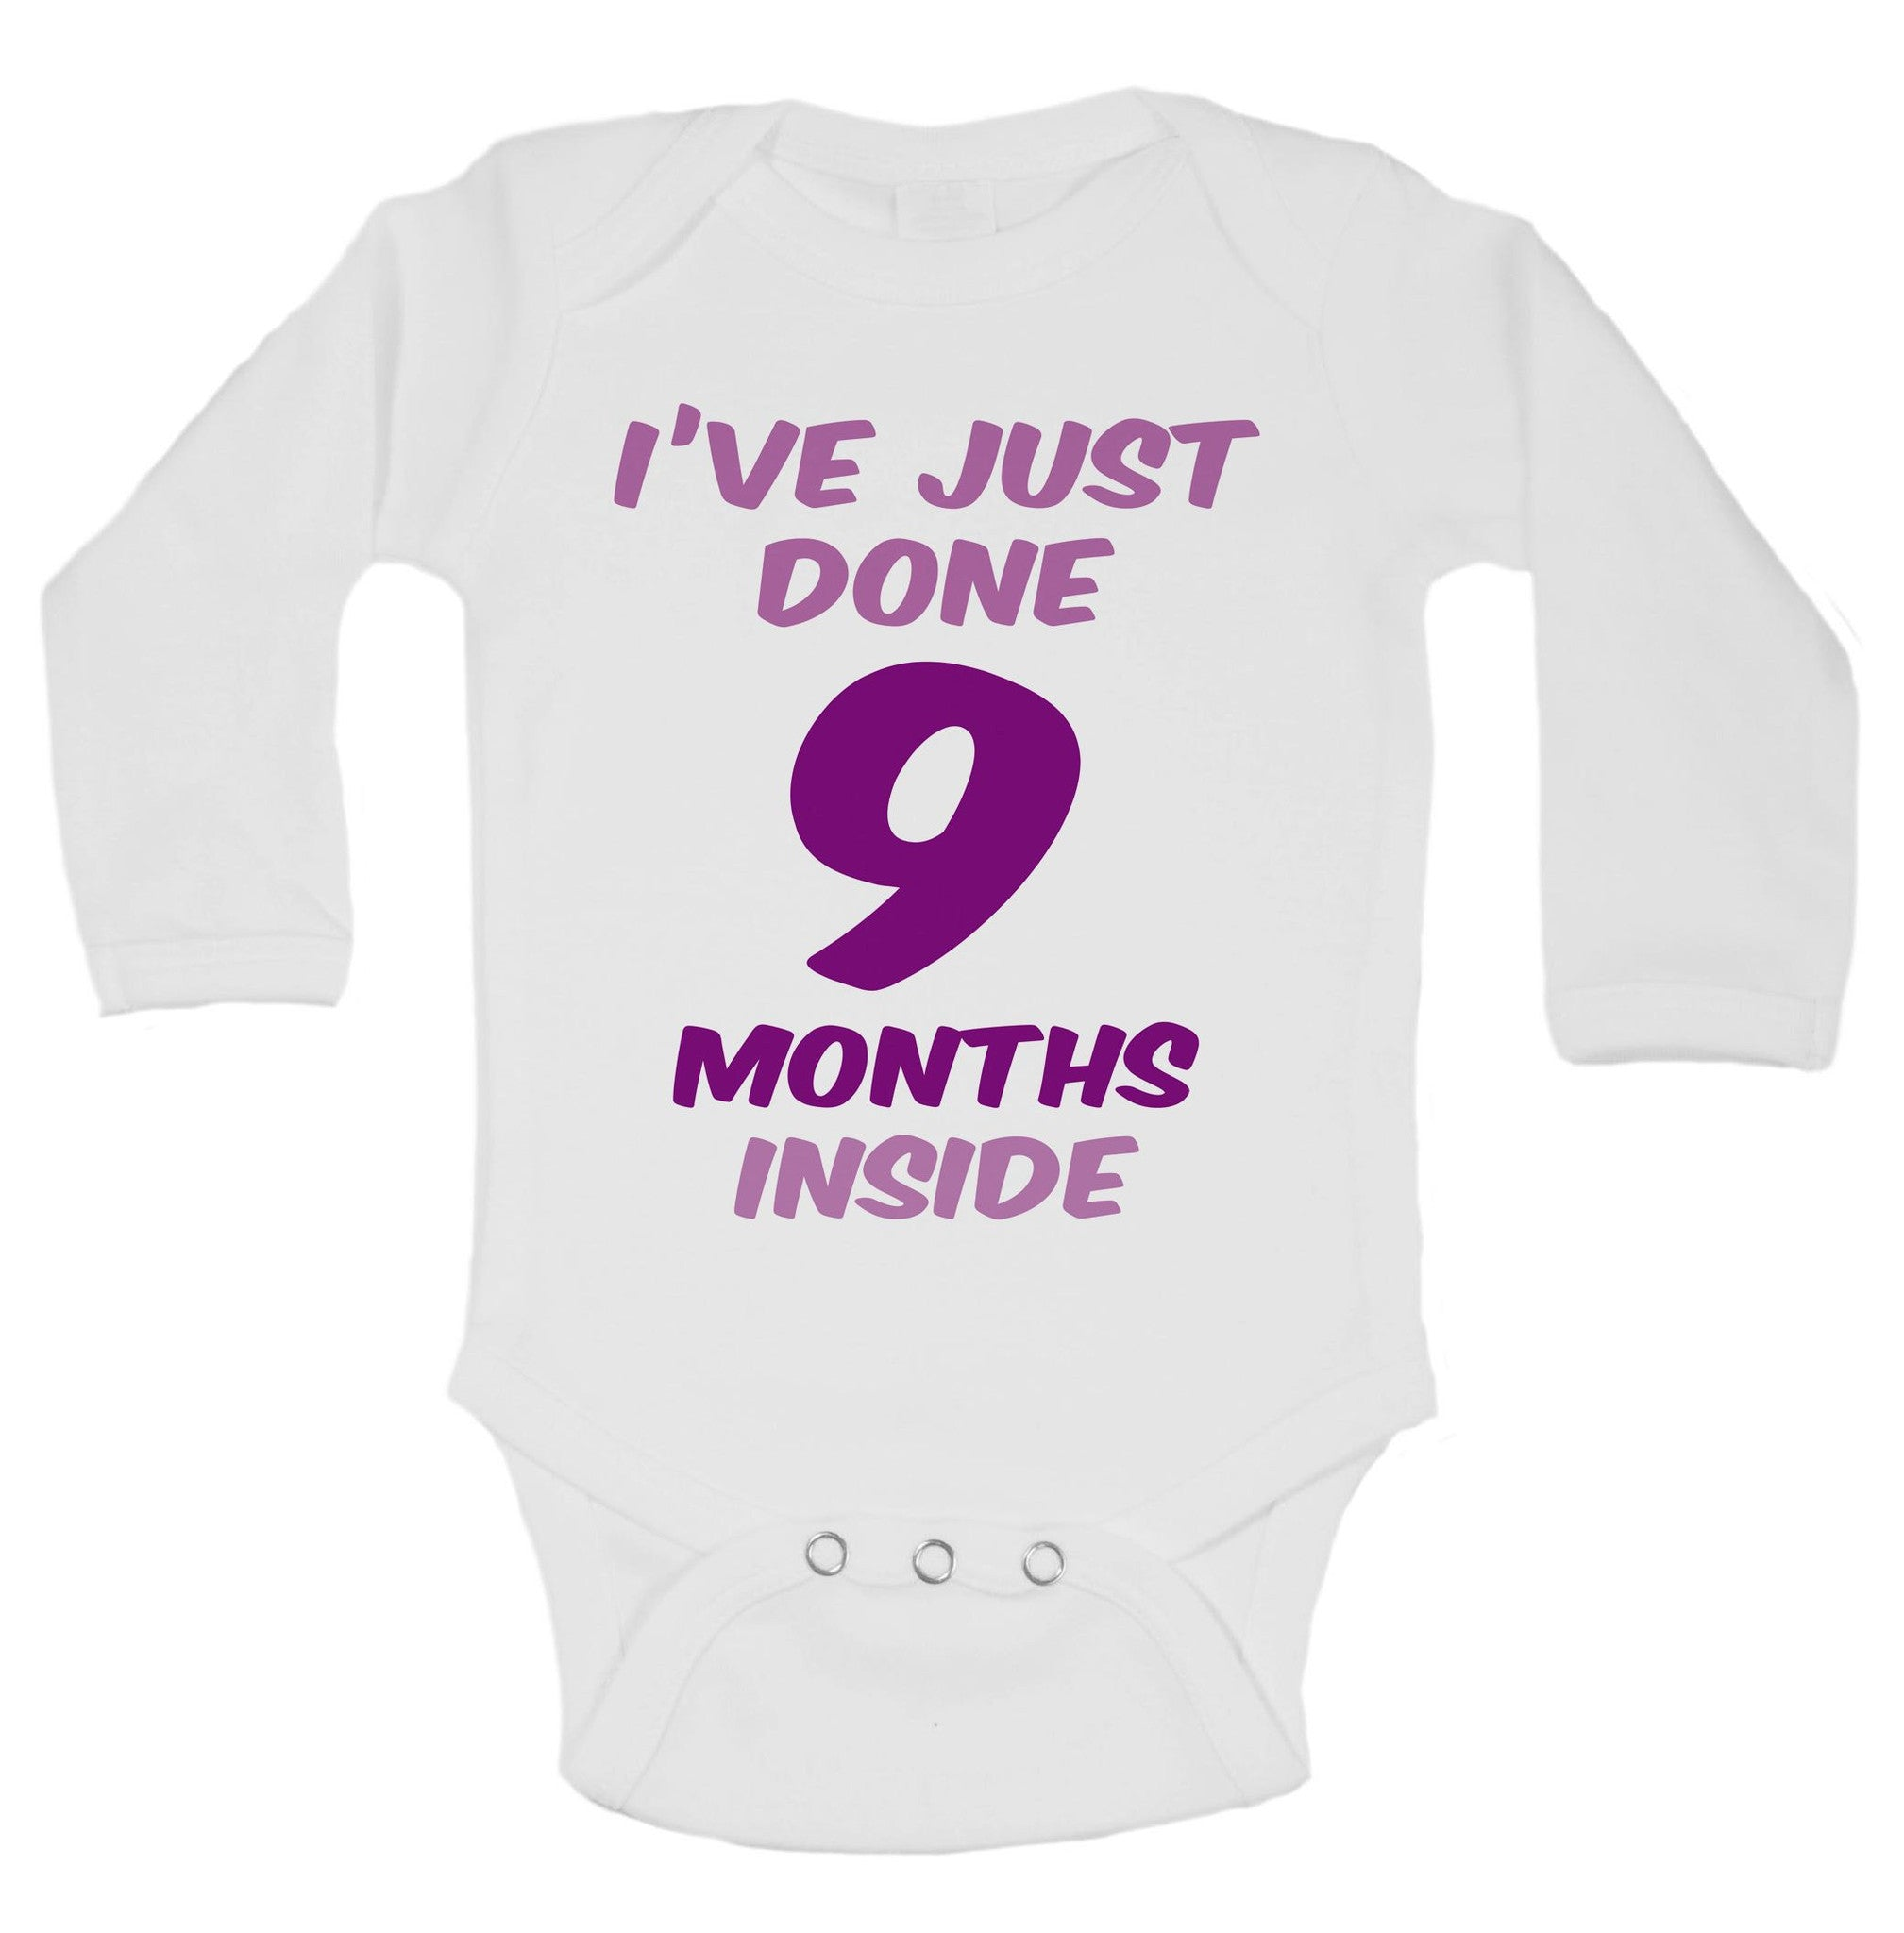 I've Just Done 9 Months Inside Funny Kids Onesie - B35 - Funny Shirts Tank Tops Burnouts and Triblends  - 2